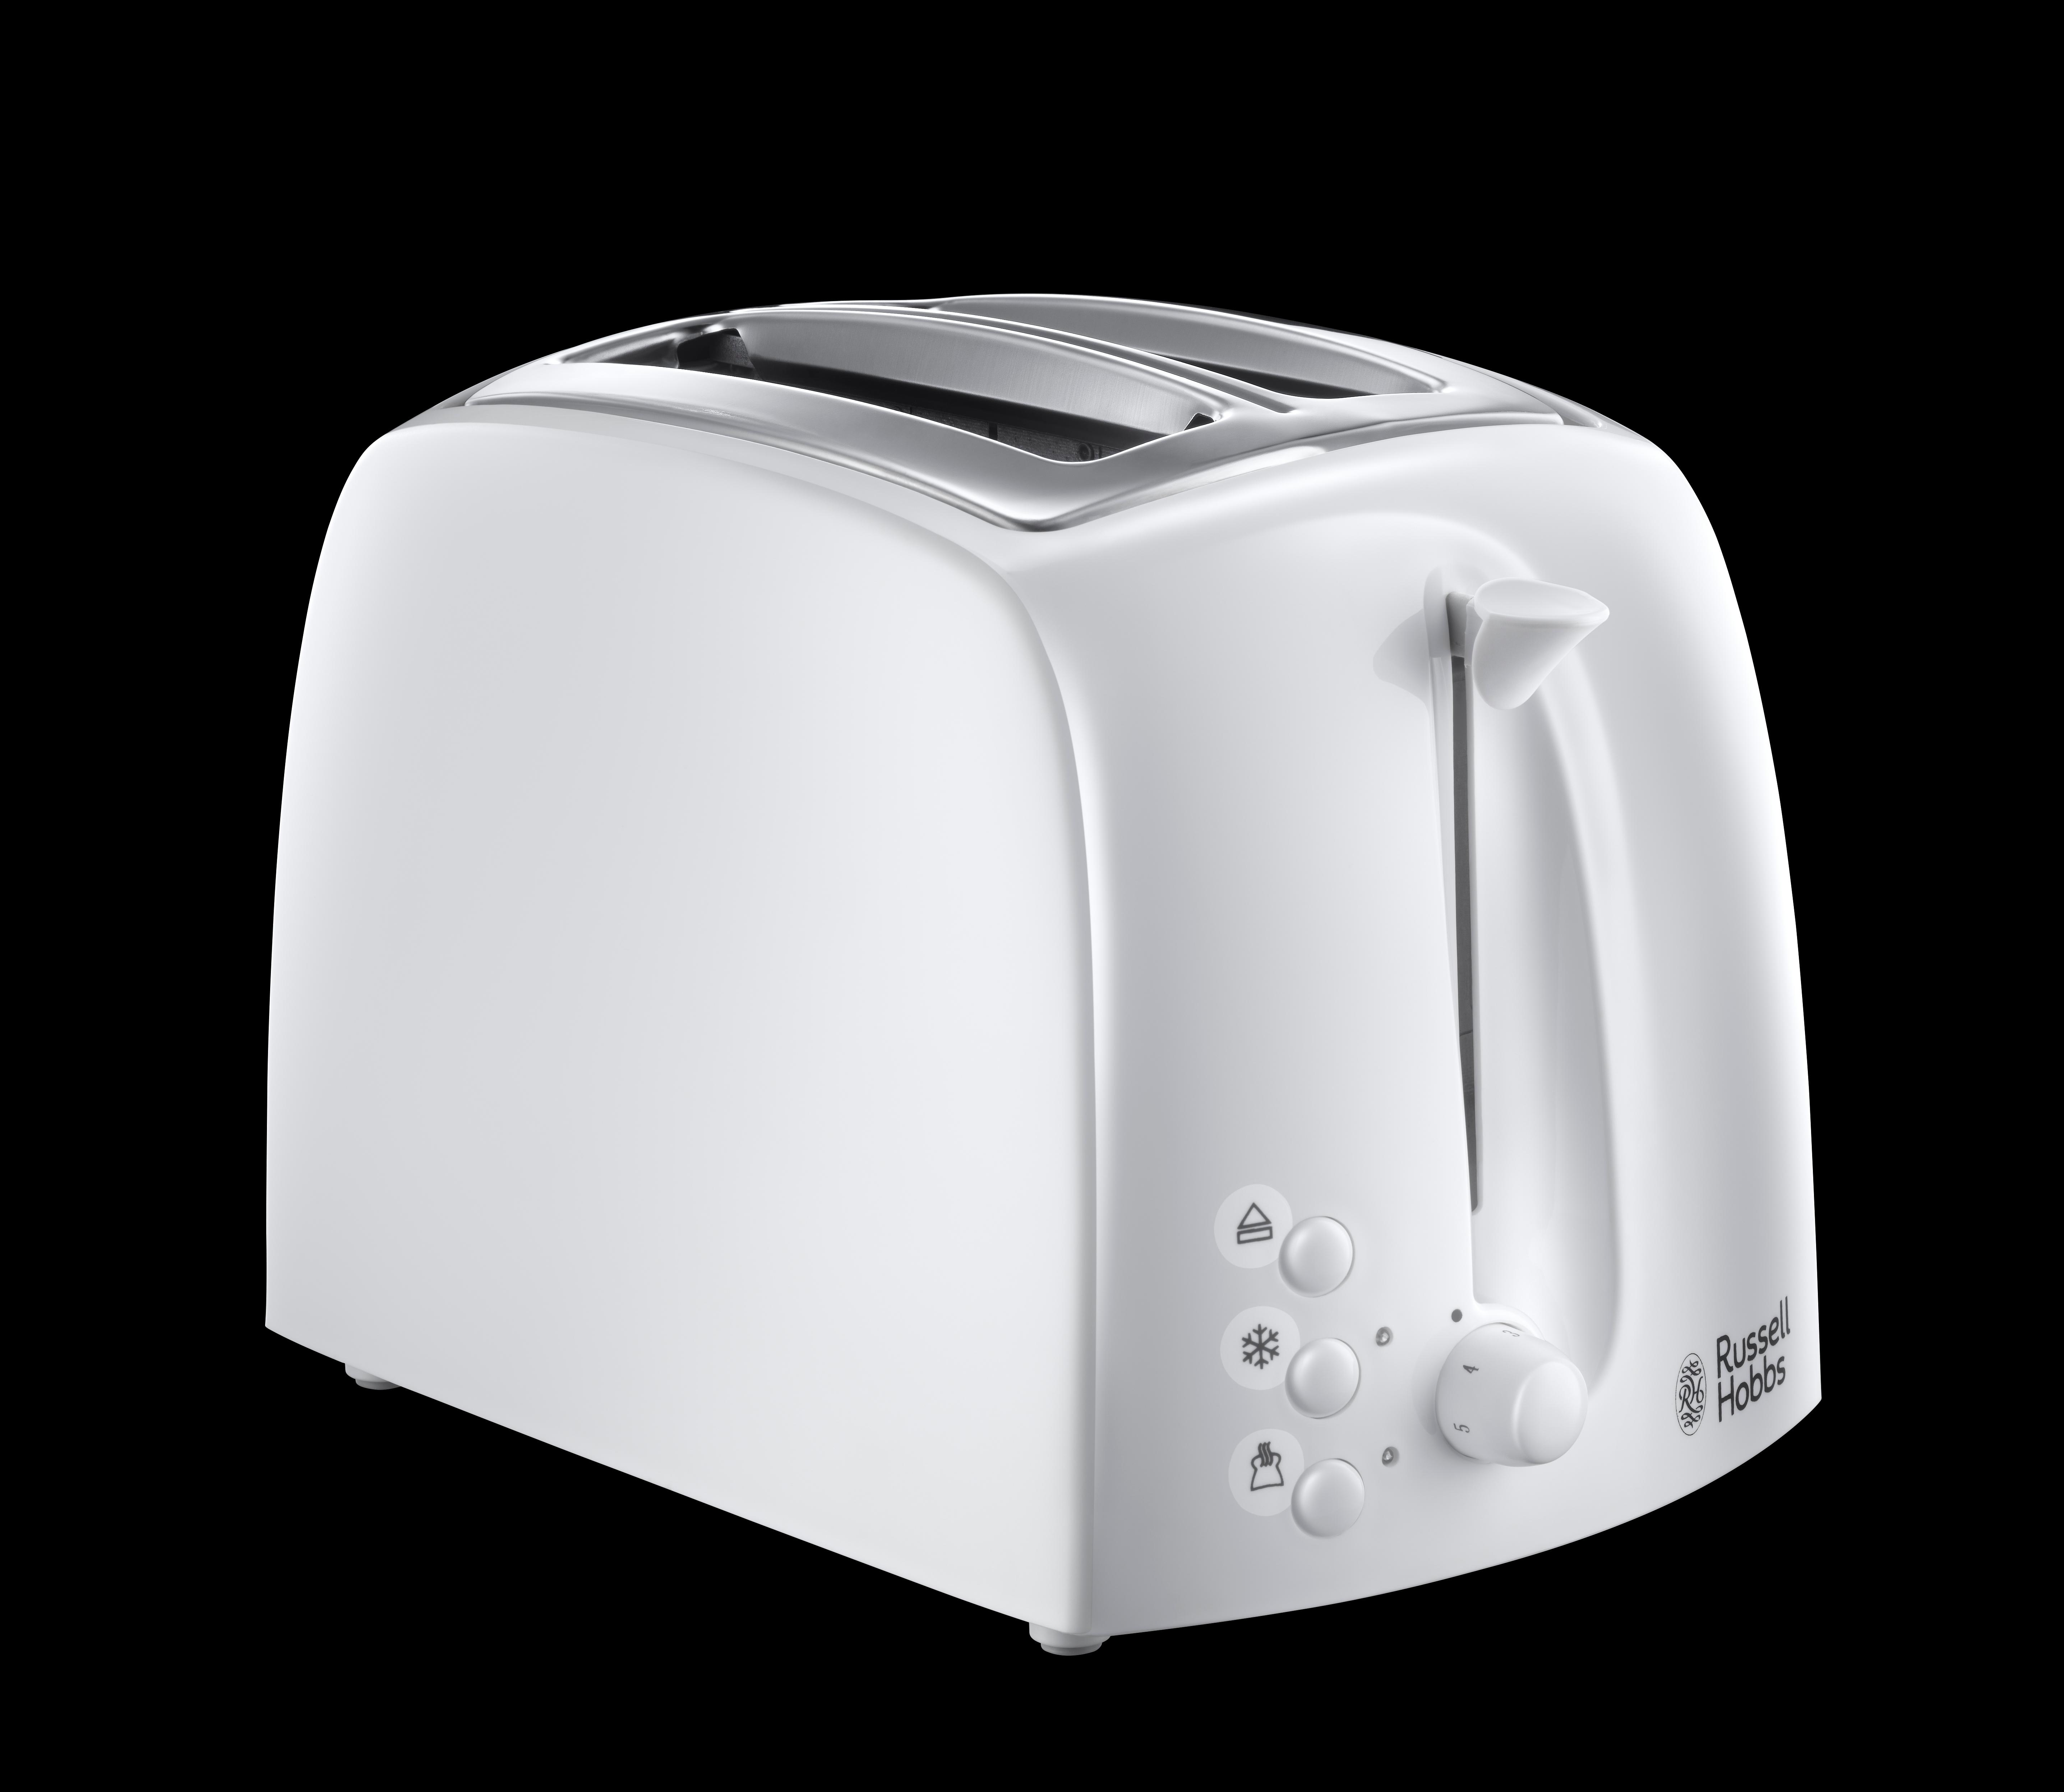 russell hobbs textures 2 slice toaster 21640 white kitchen home. Black Bedroom Furniture Sets. Home Design Ideas